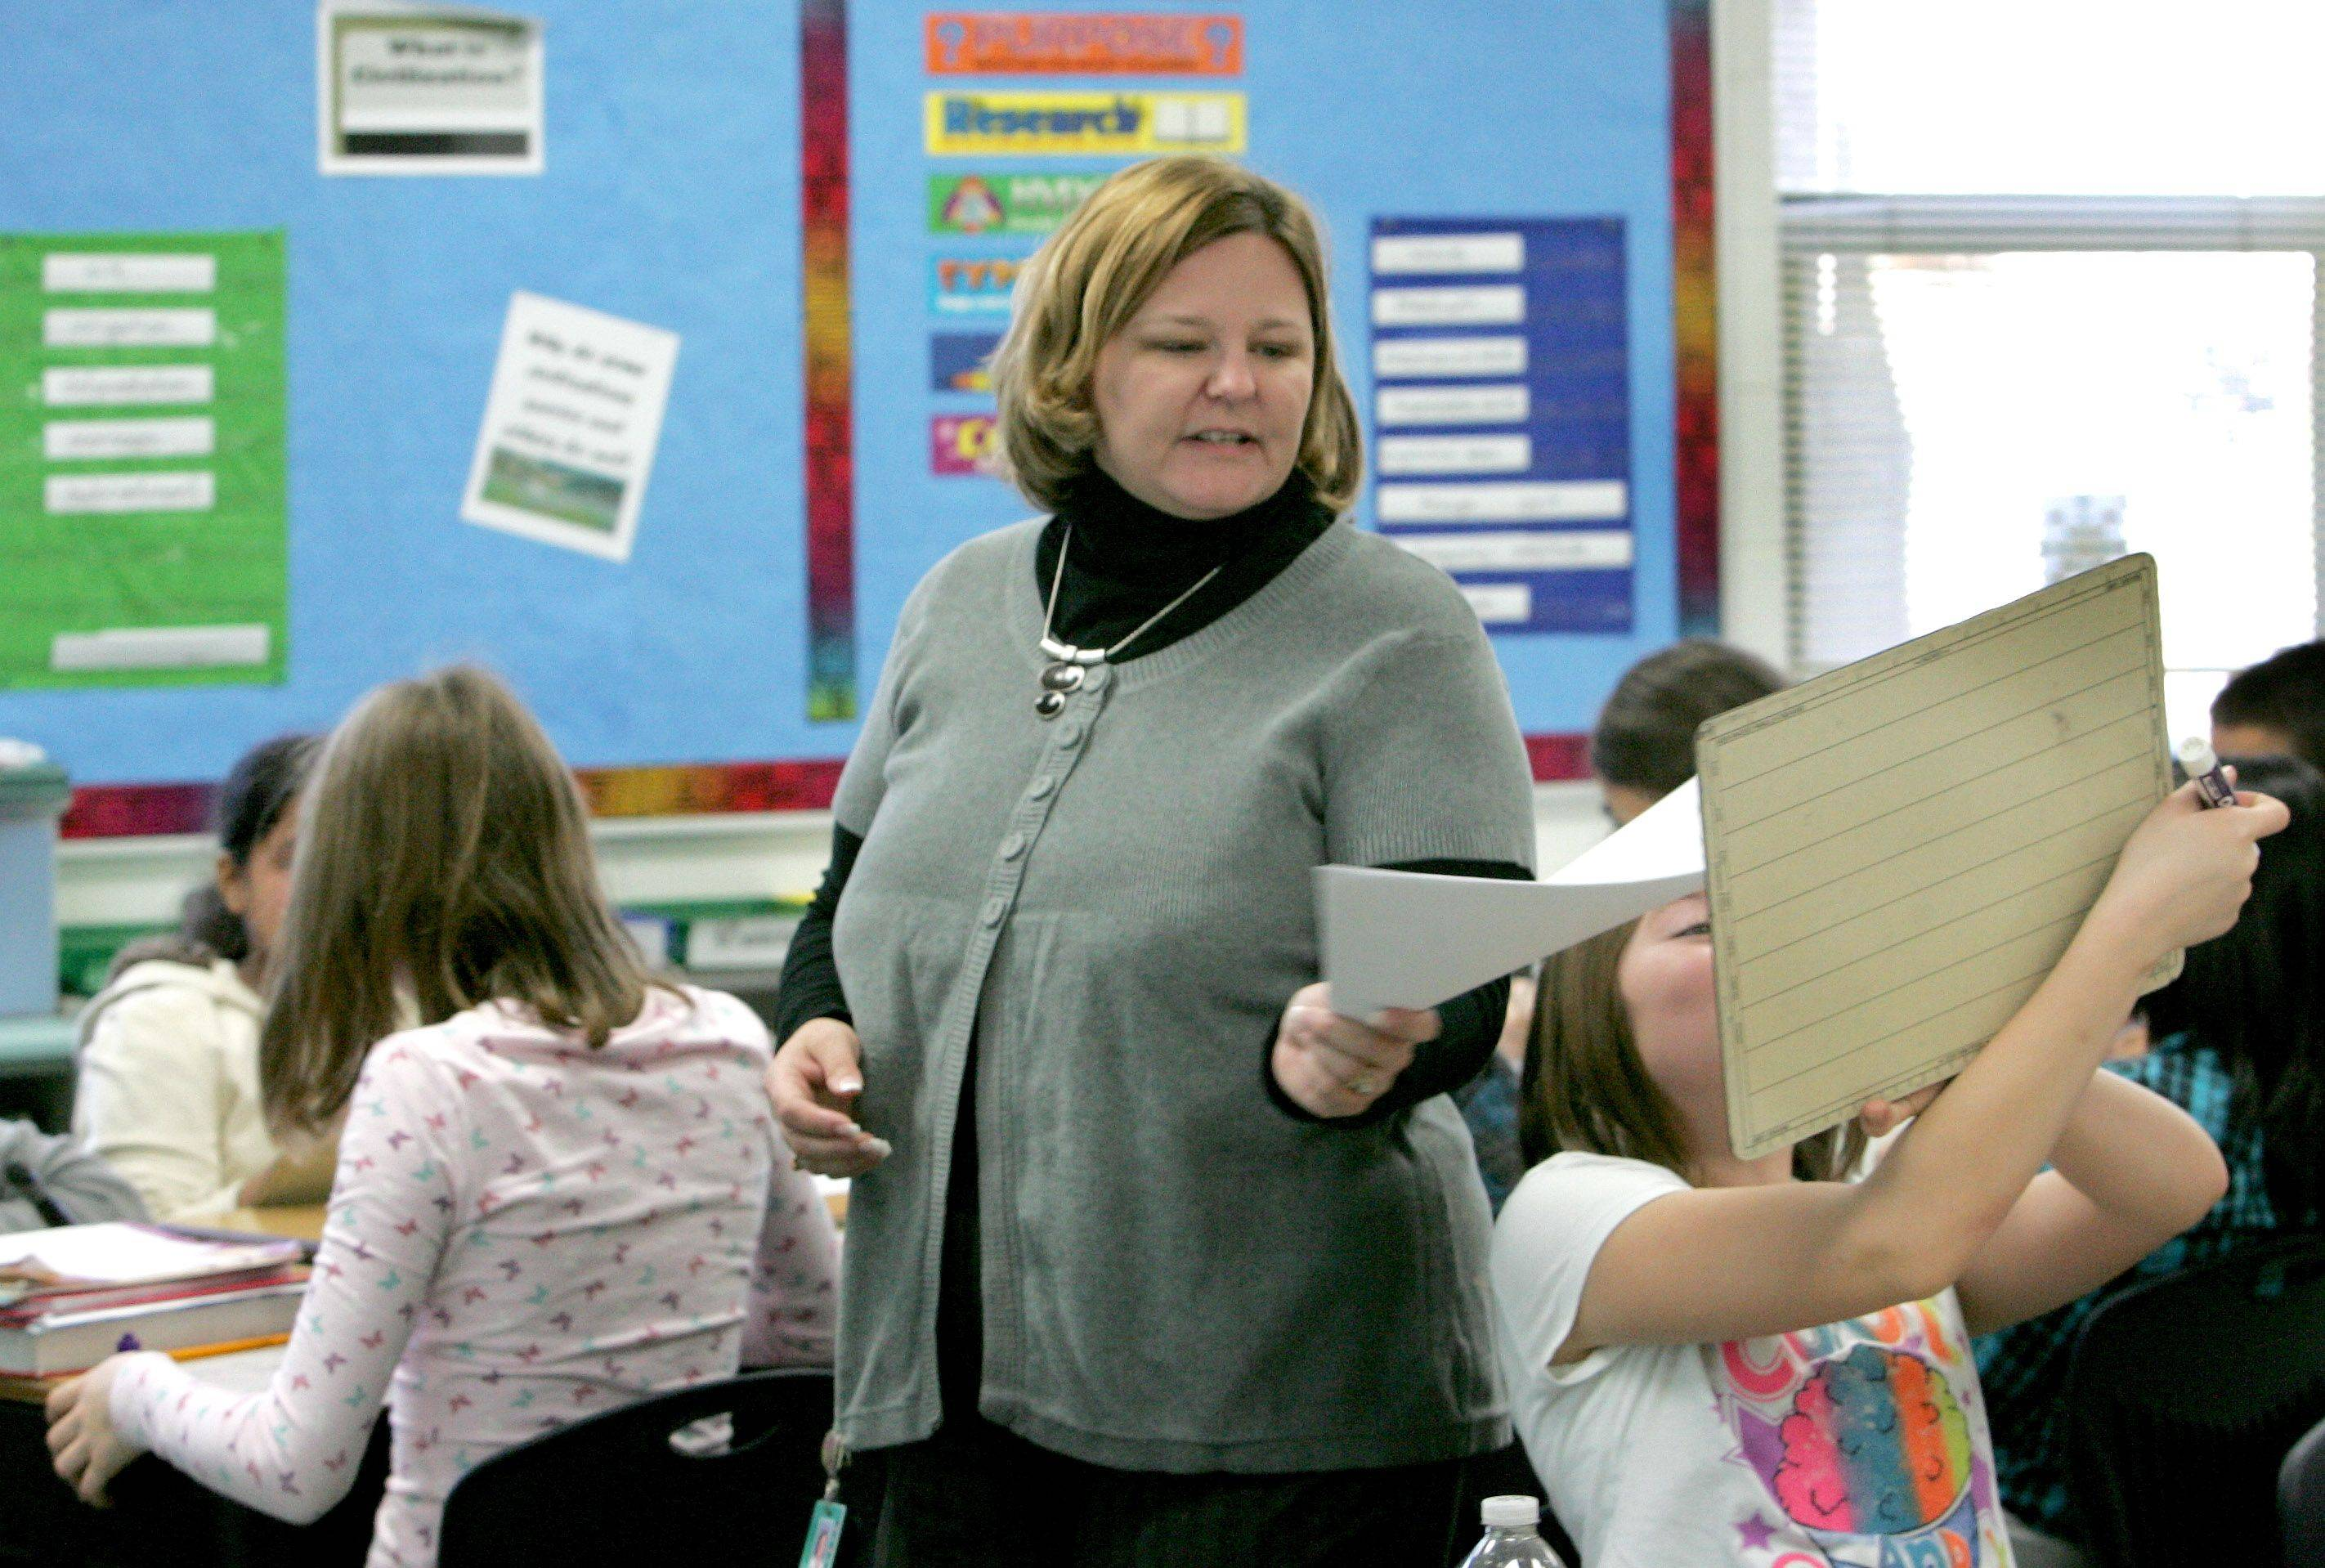 Karen Apostoli teaches math to sixth-grade students at Wegner Elementary School in West Chicago. Officials revamped the curriculum this year to emphasize more real-world applications.